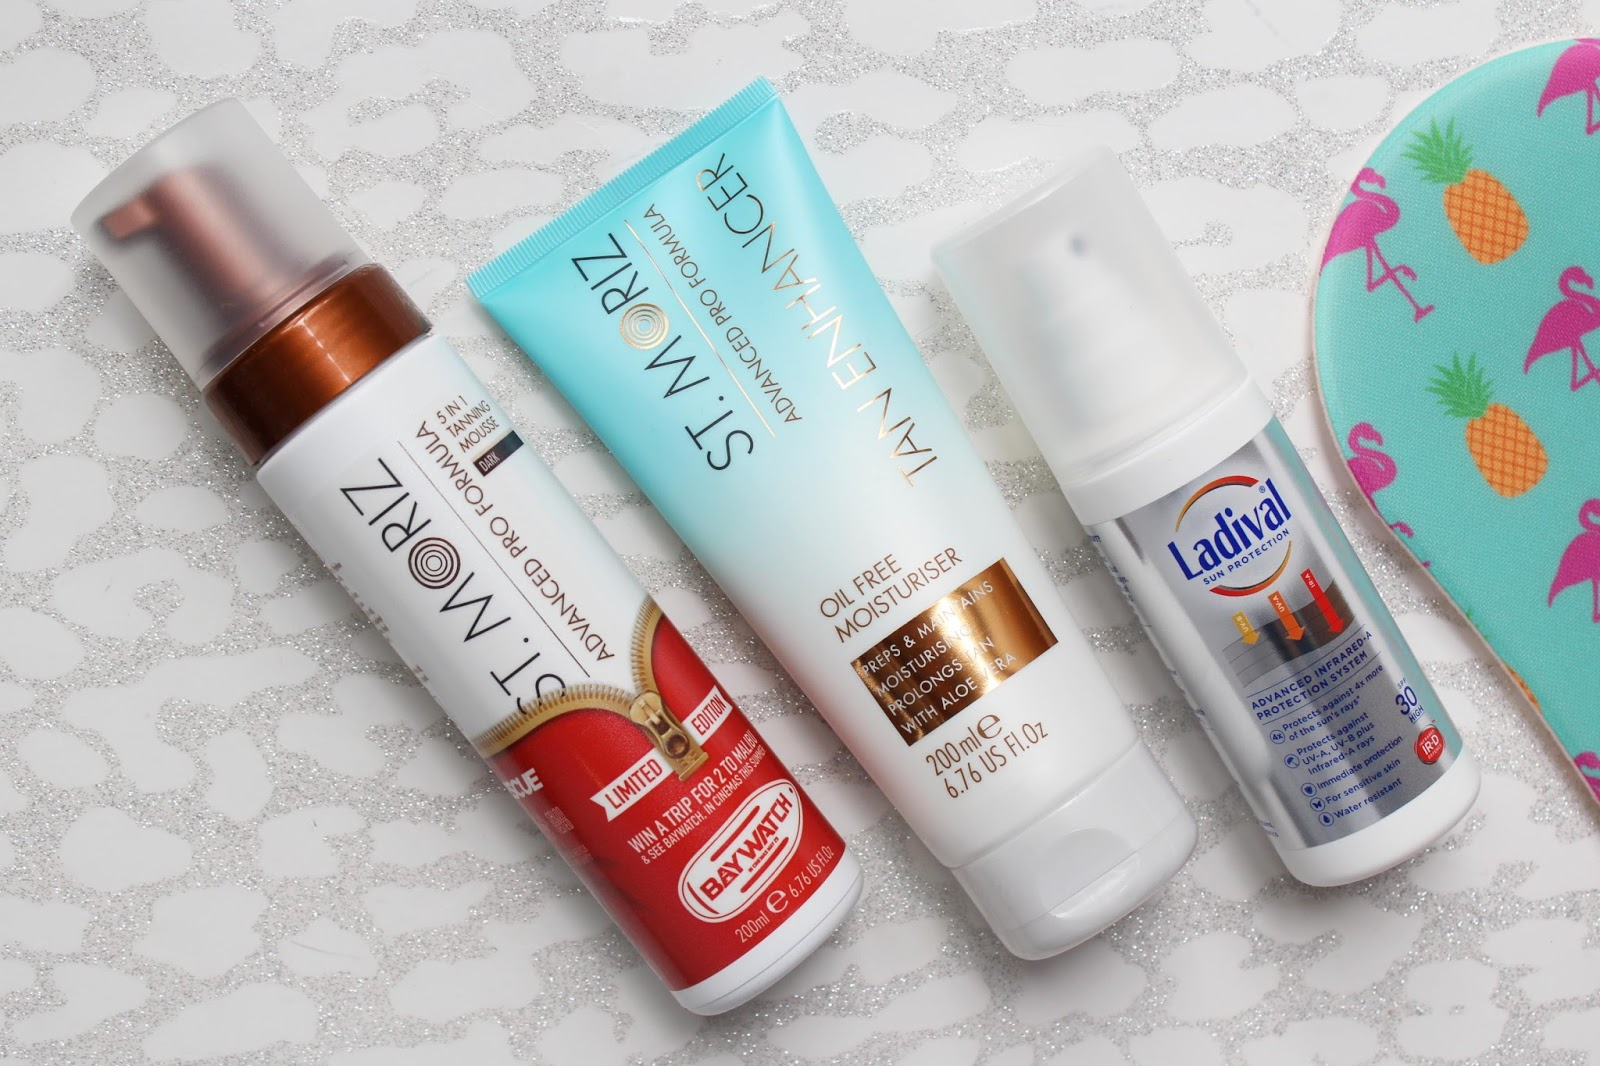 Tan & Protect for Summer